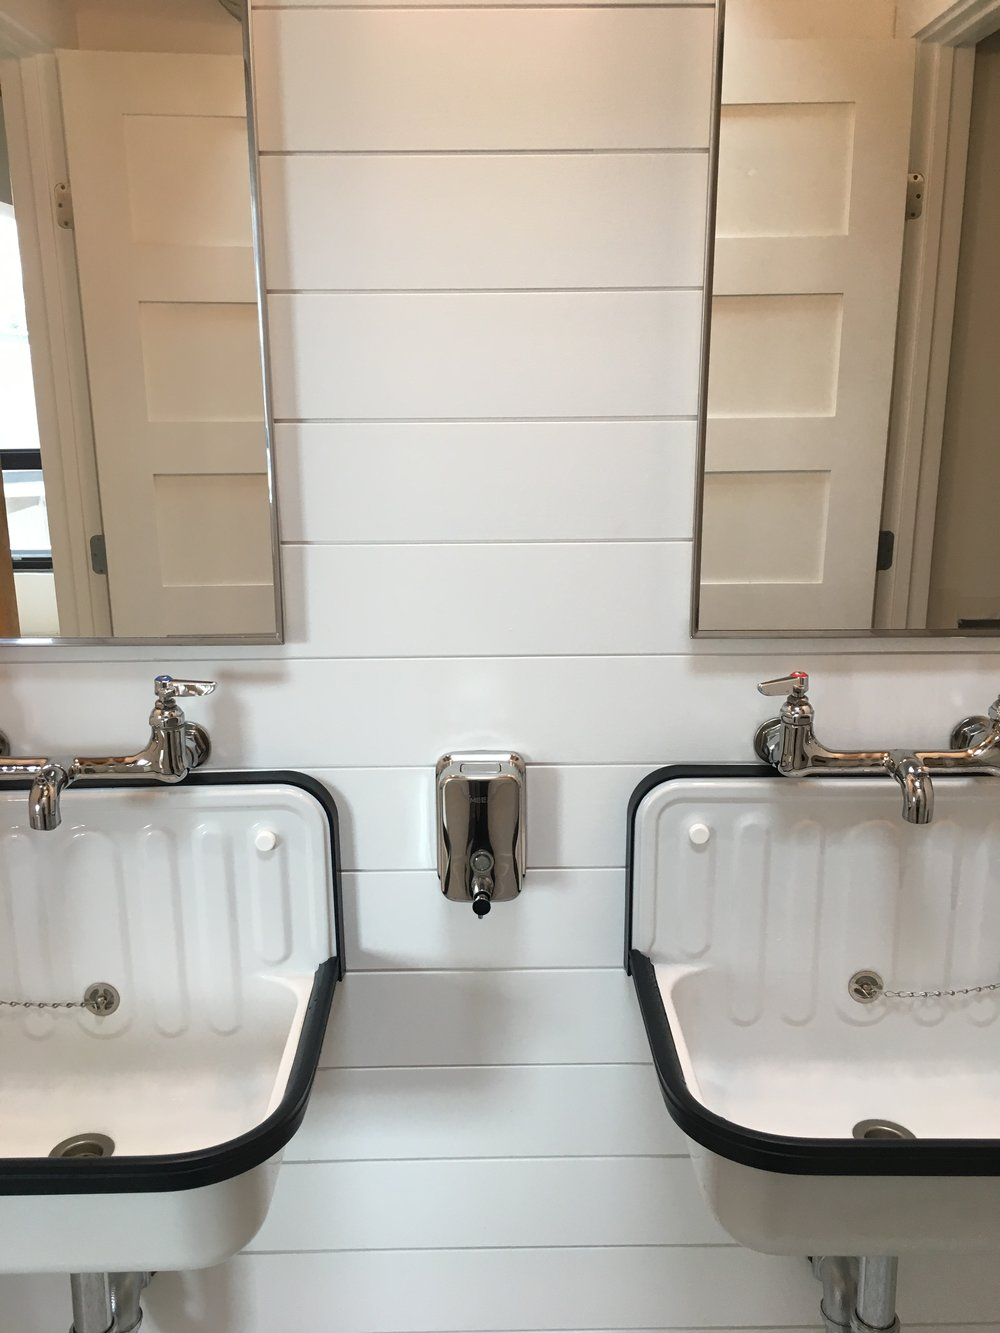 Wall Mounted Soap Dispenser and Wall Mounted Mop Sink Faucets